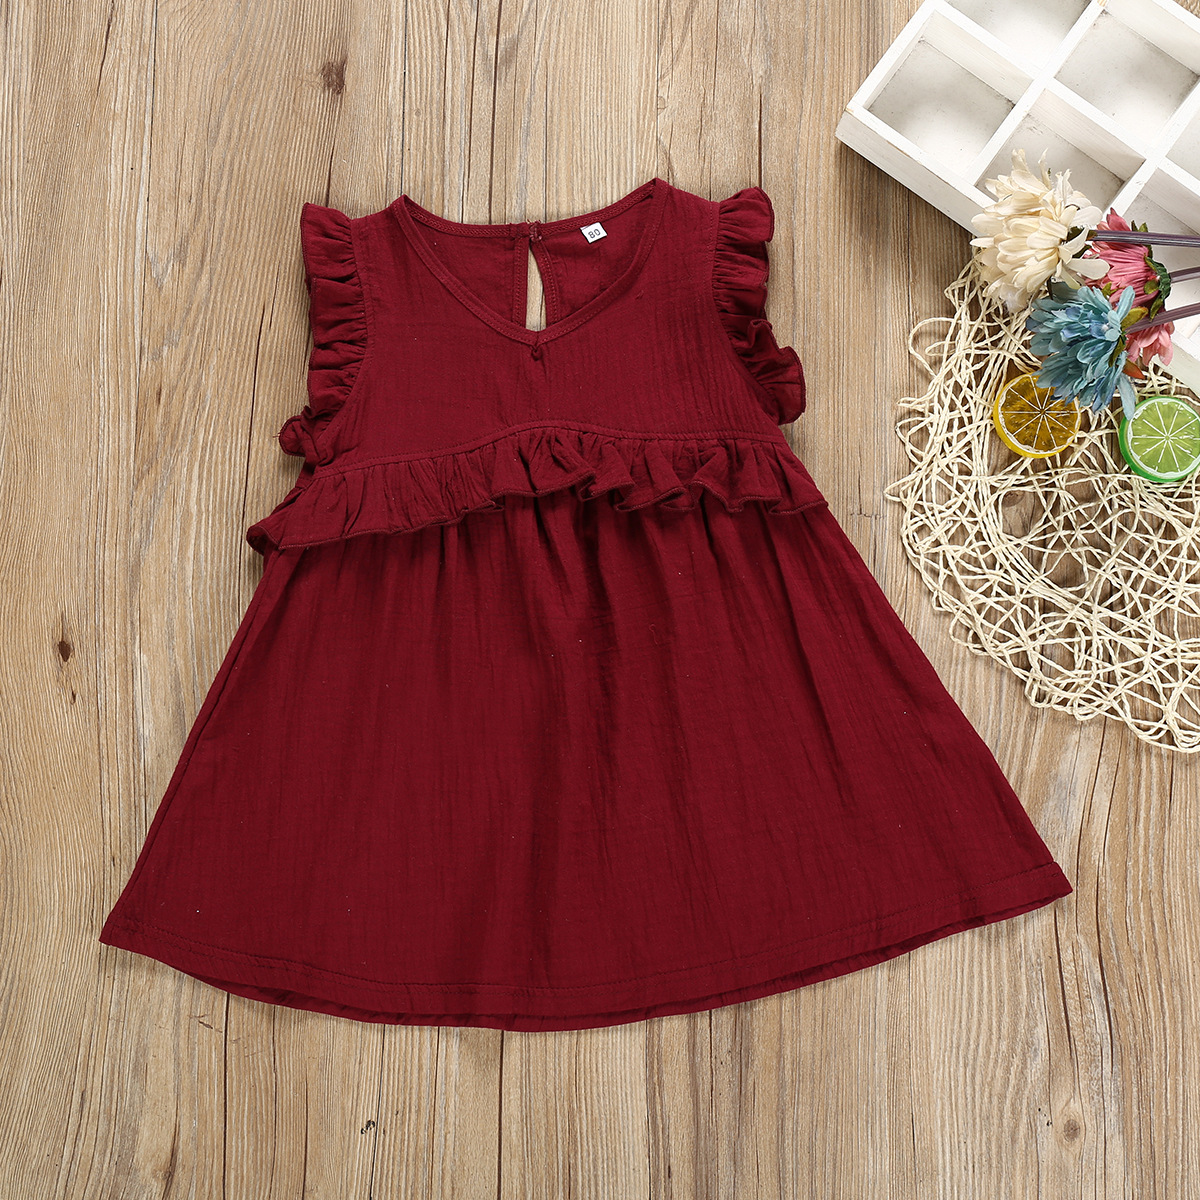 2019 cheap summer girl child cotton ruffles clothing dress with best service and low price